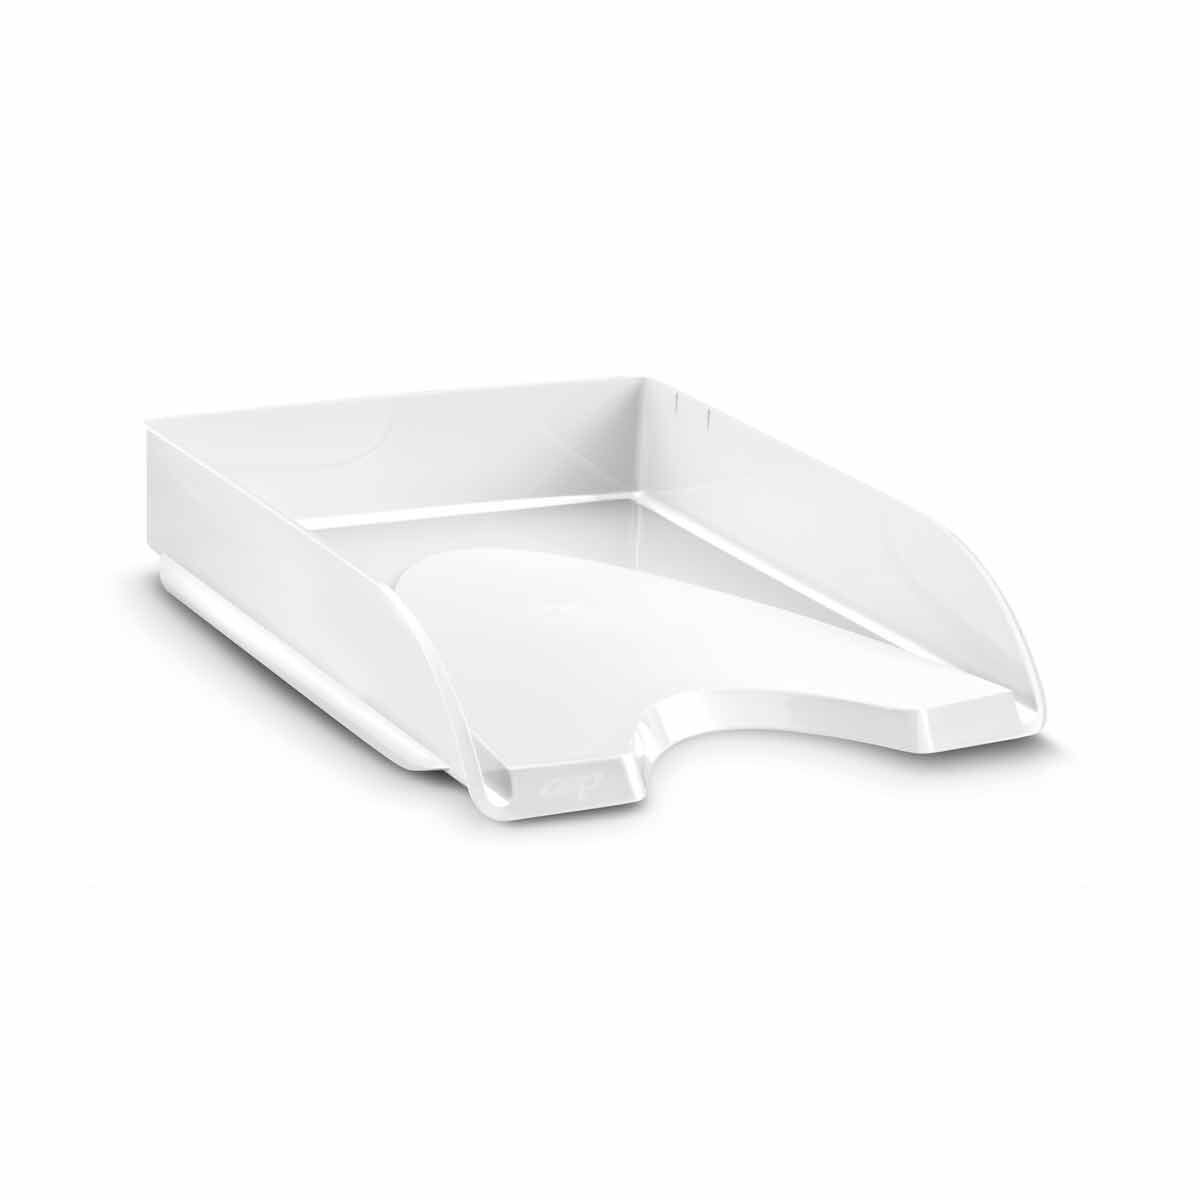 CEP Pro Letter Tray White